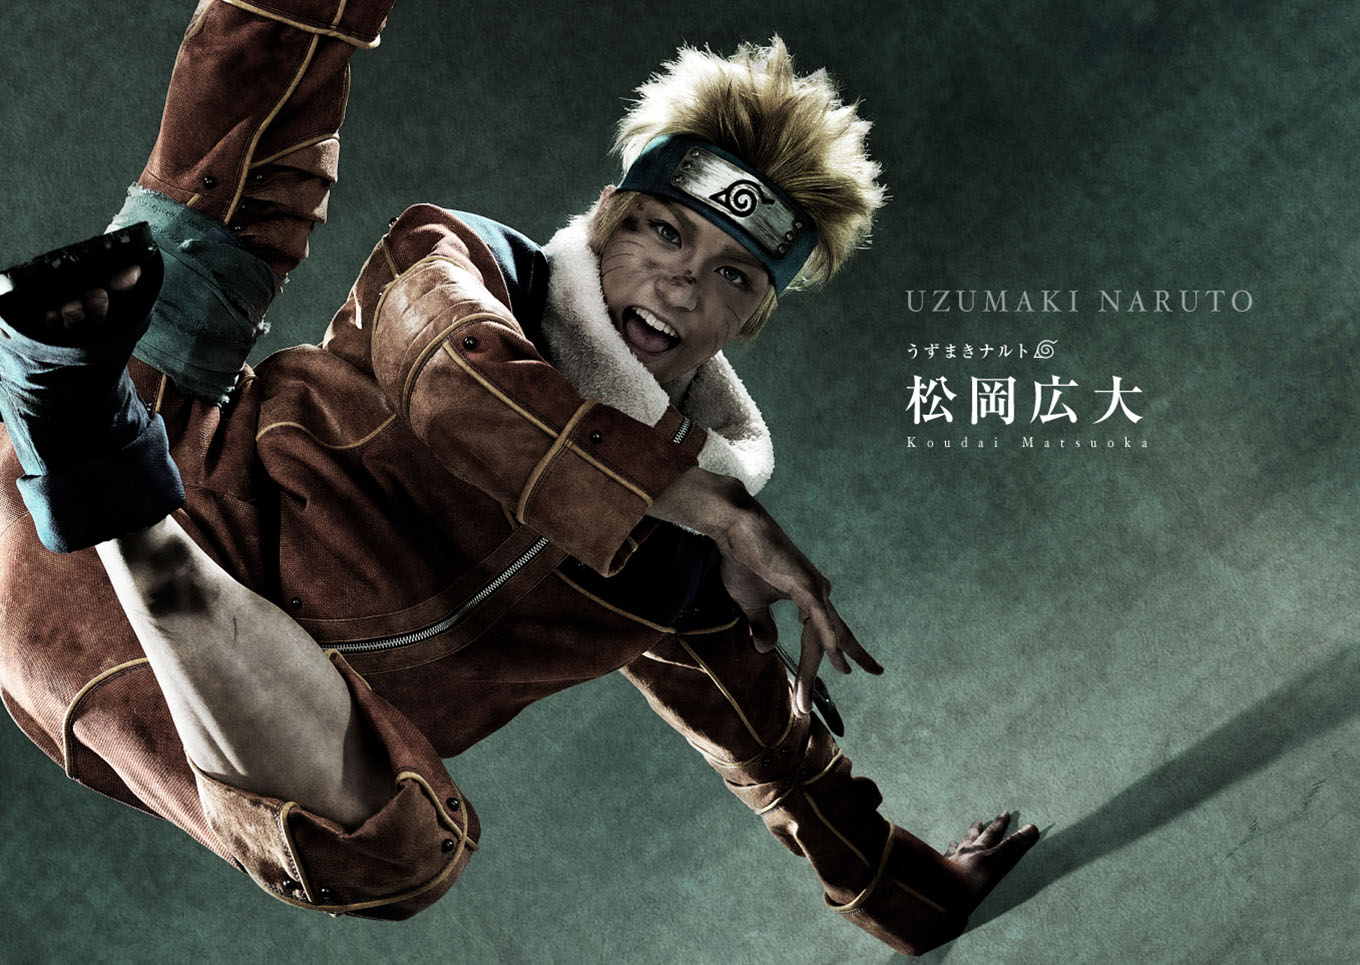 Naruto Play Receives Update To Live Action Cast